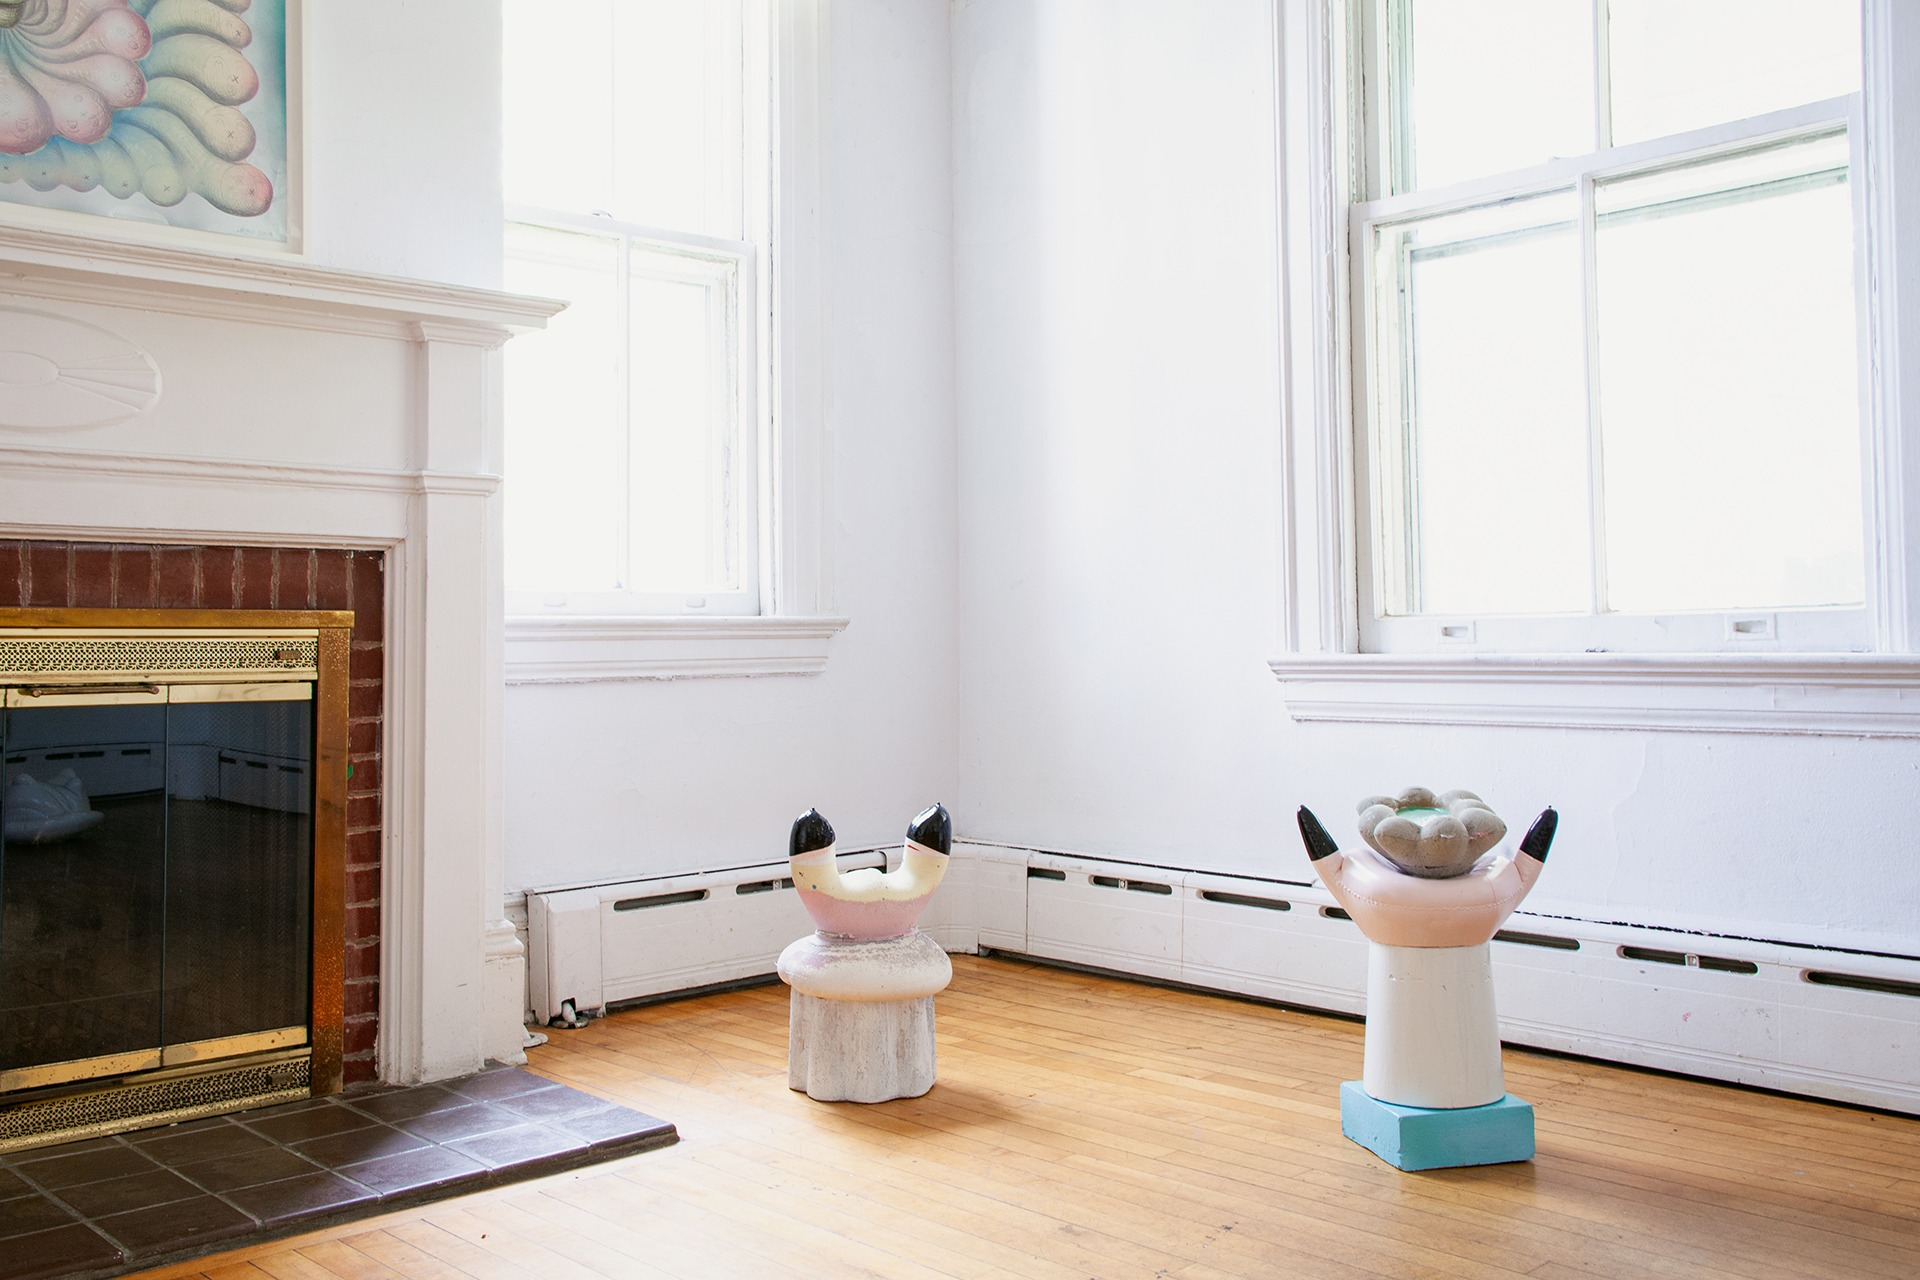 An installation view of Mike Goodlett's work in a Colonial Revival house on Governors Island for NADA House 2021.